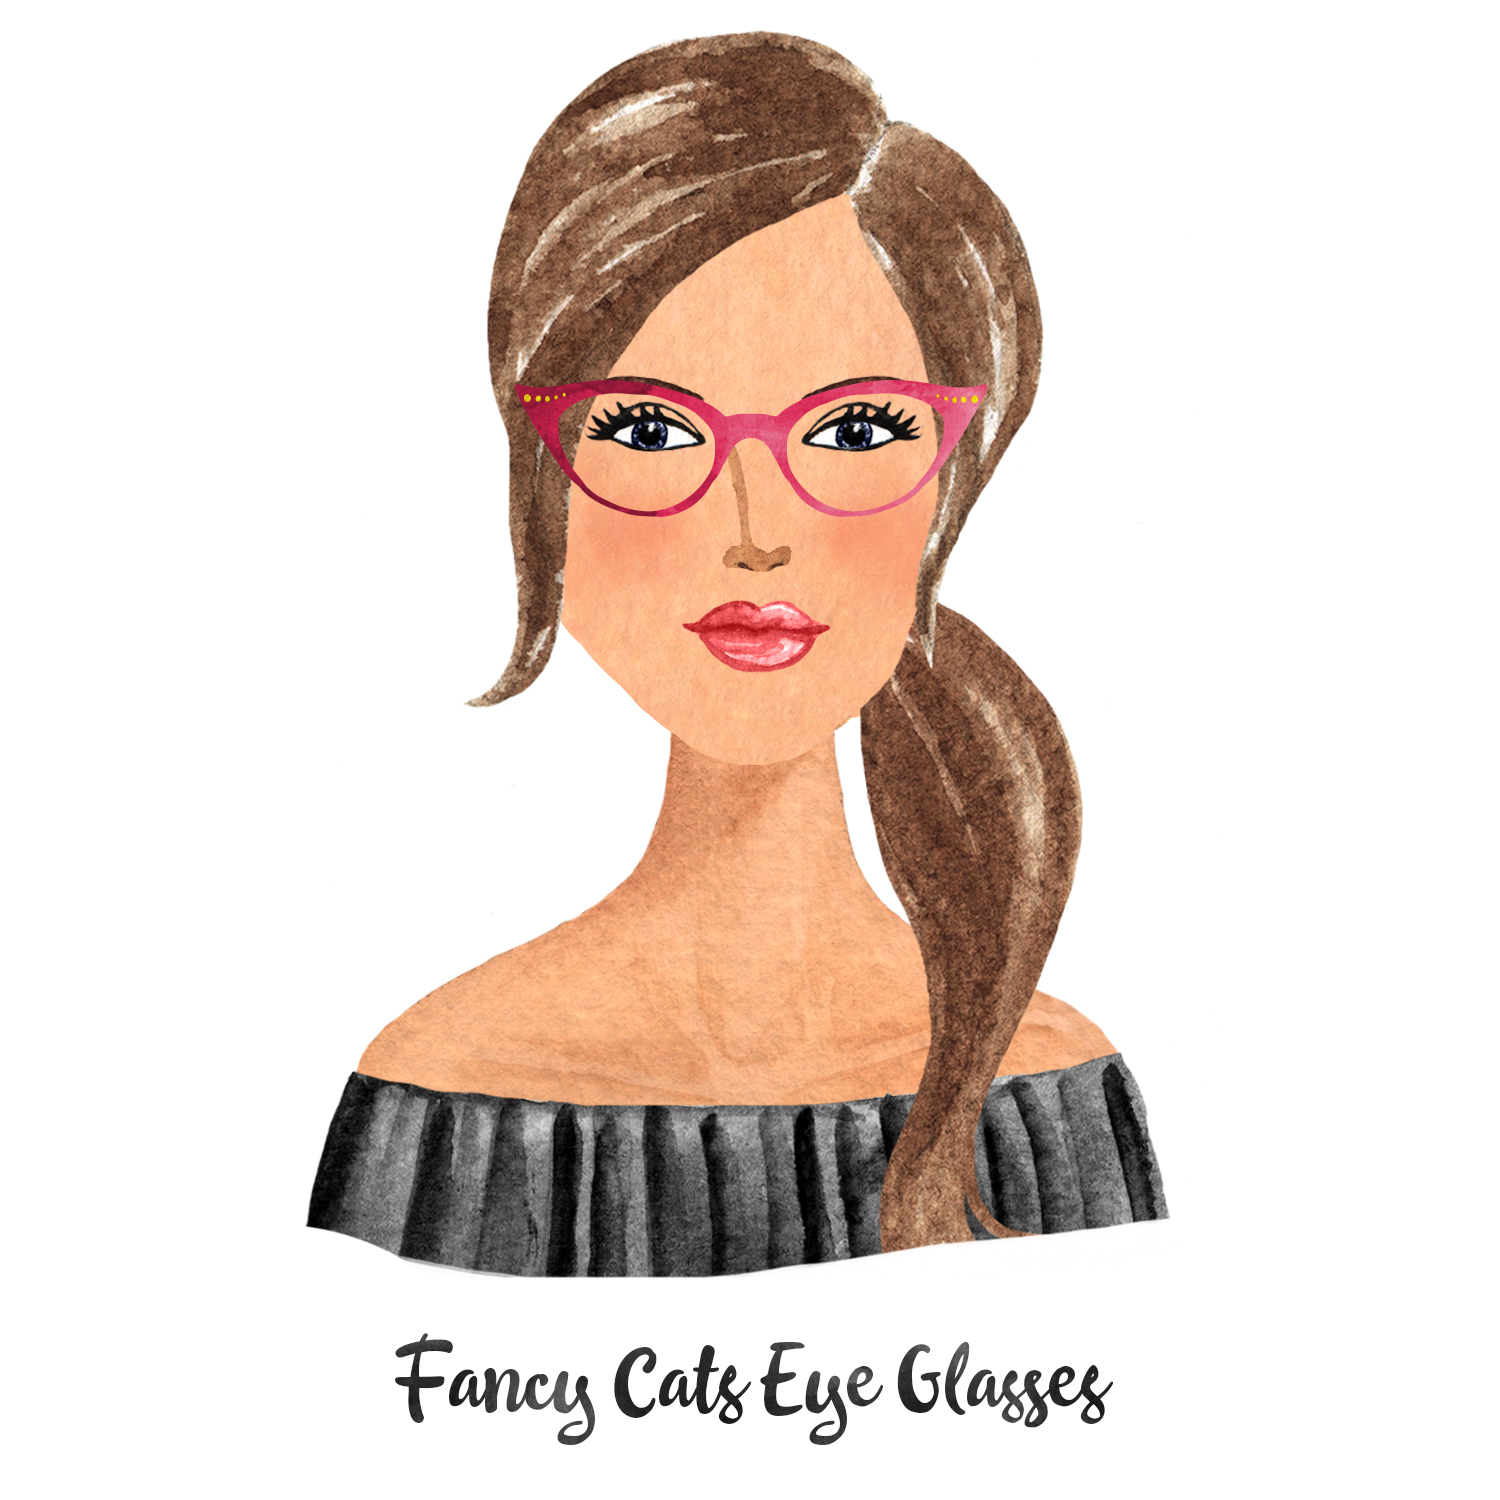 Glasses Cats Eye Fancy.jpg